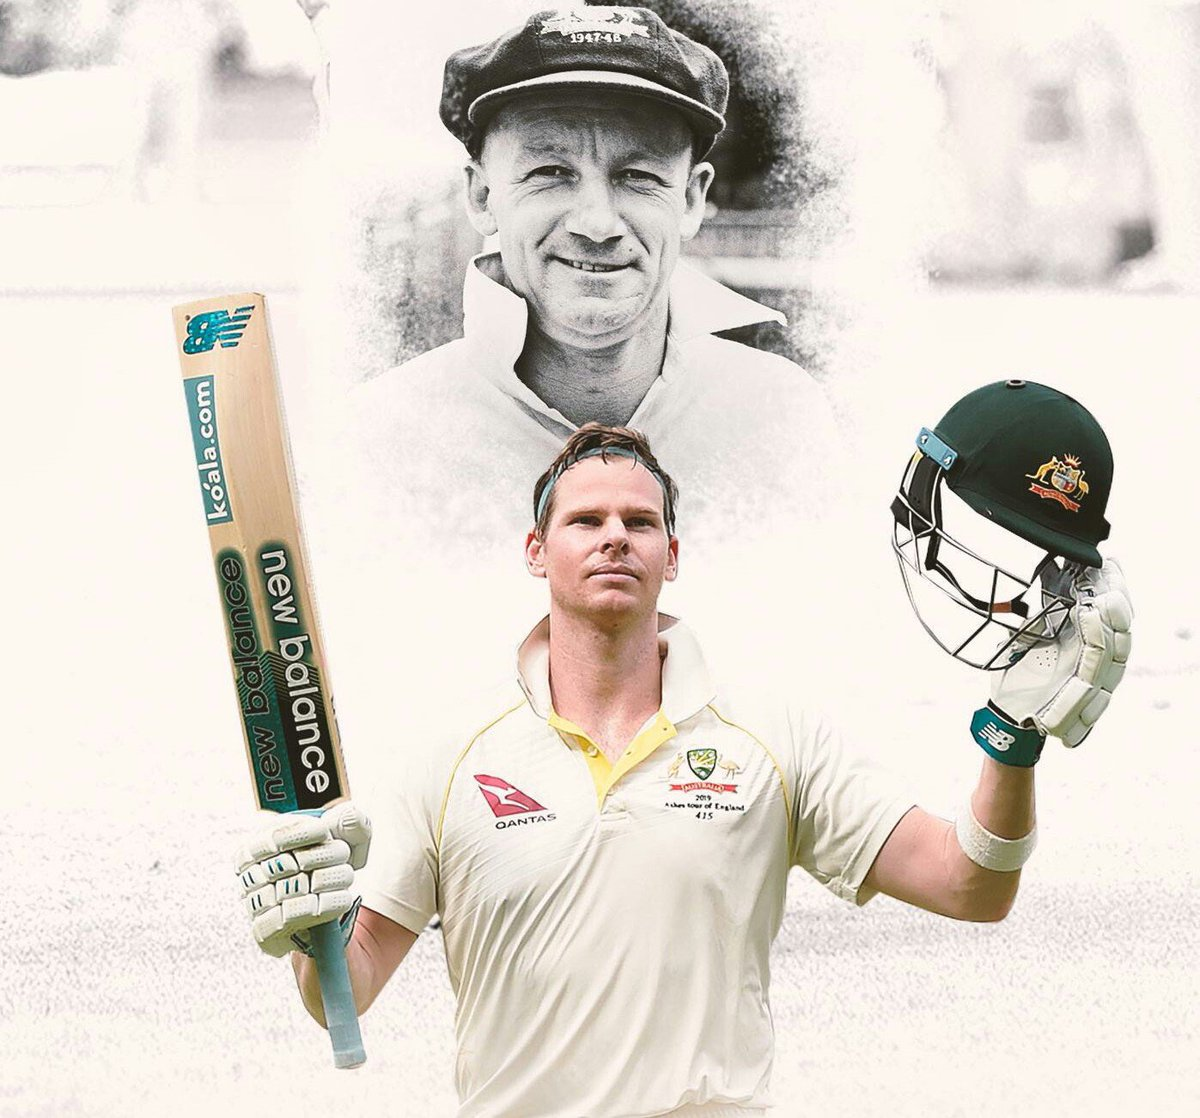 Thanks #Ashes, 6 memorable weeks, what an advert for Test Cricket 👏 Bradmanesque Smith 👀 Shared series stays shared 🤷♂️ Australia the better team retains Ashes🕵️♂️ Farewell Trevor Bayliss 🙋🏼♂️ what a summer of cricket 👍#sharethetrophy #yeswekane #backtheblackcaps